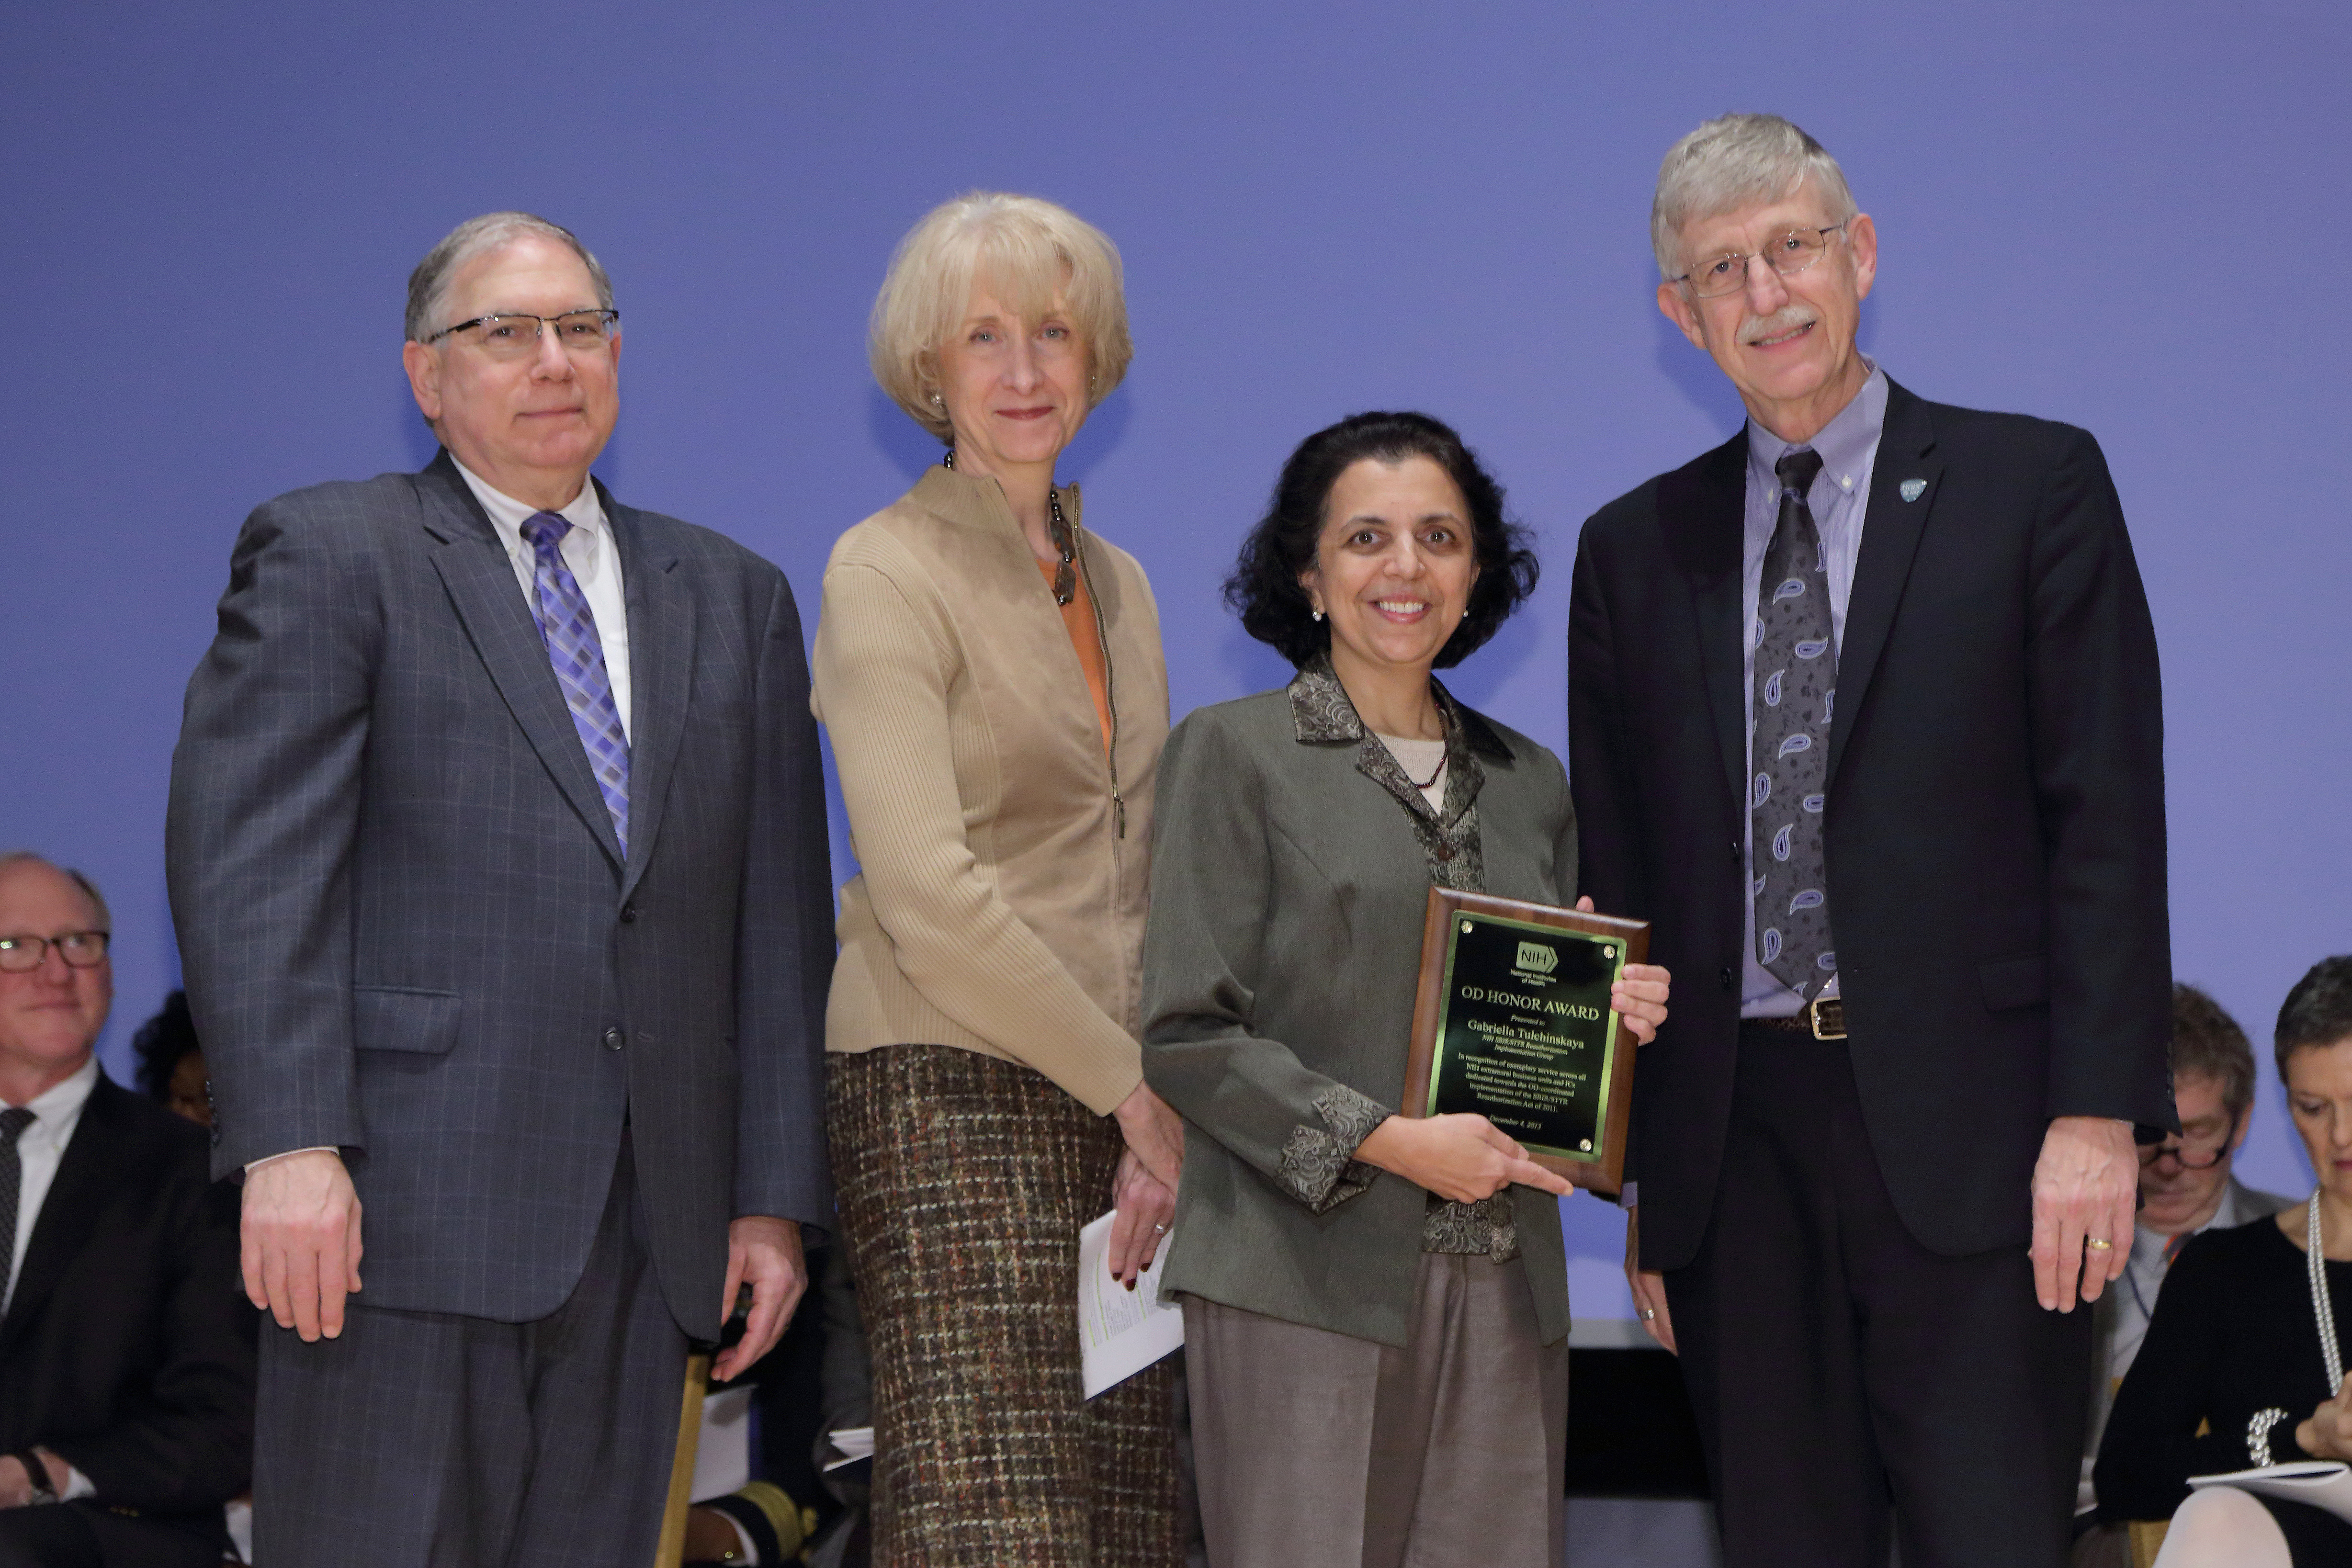 Image of Medha Bhagwat receiving the 2013 NIH Honor Award